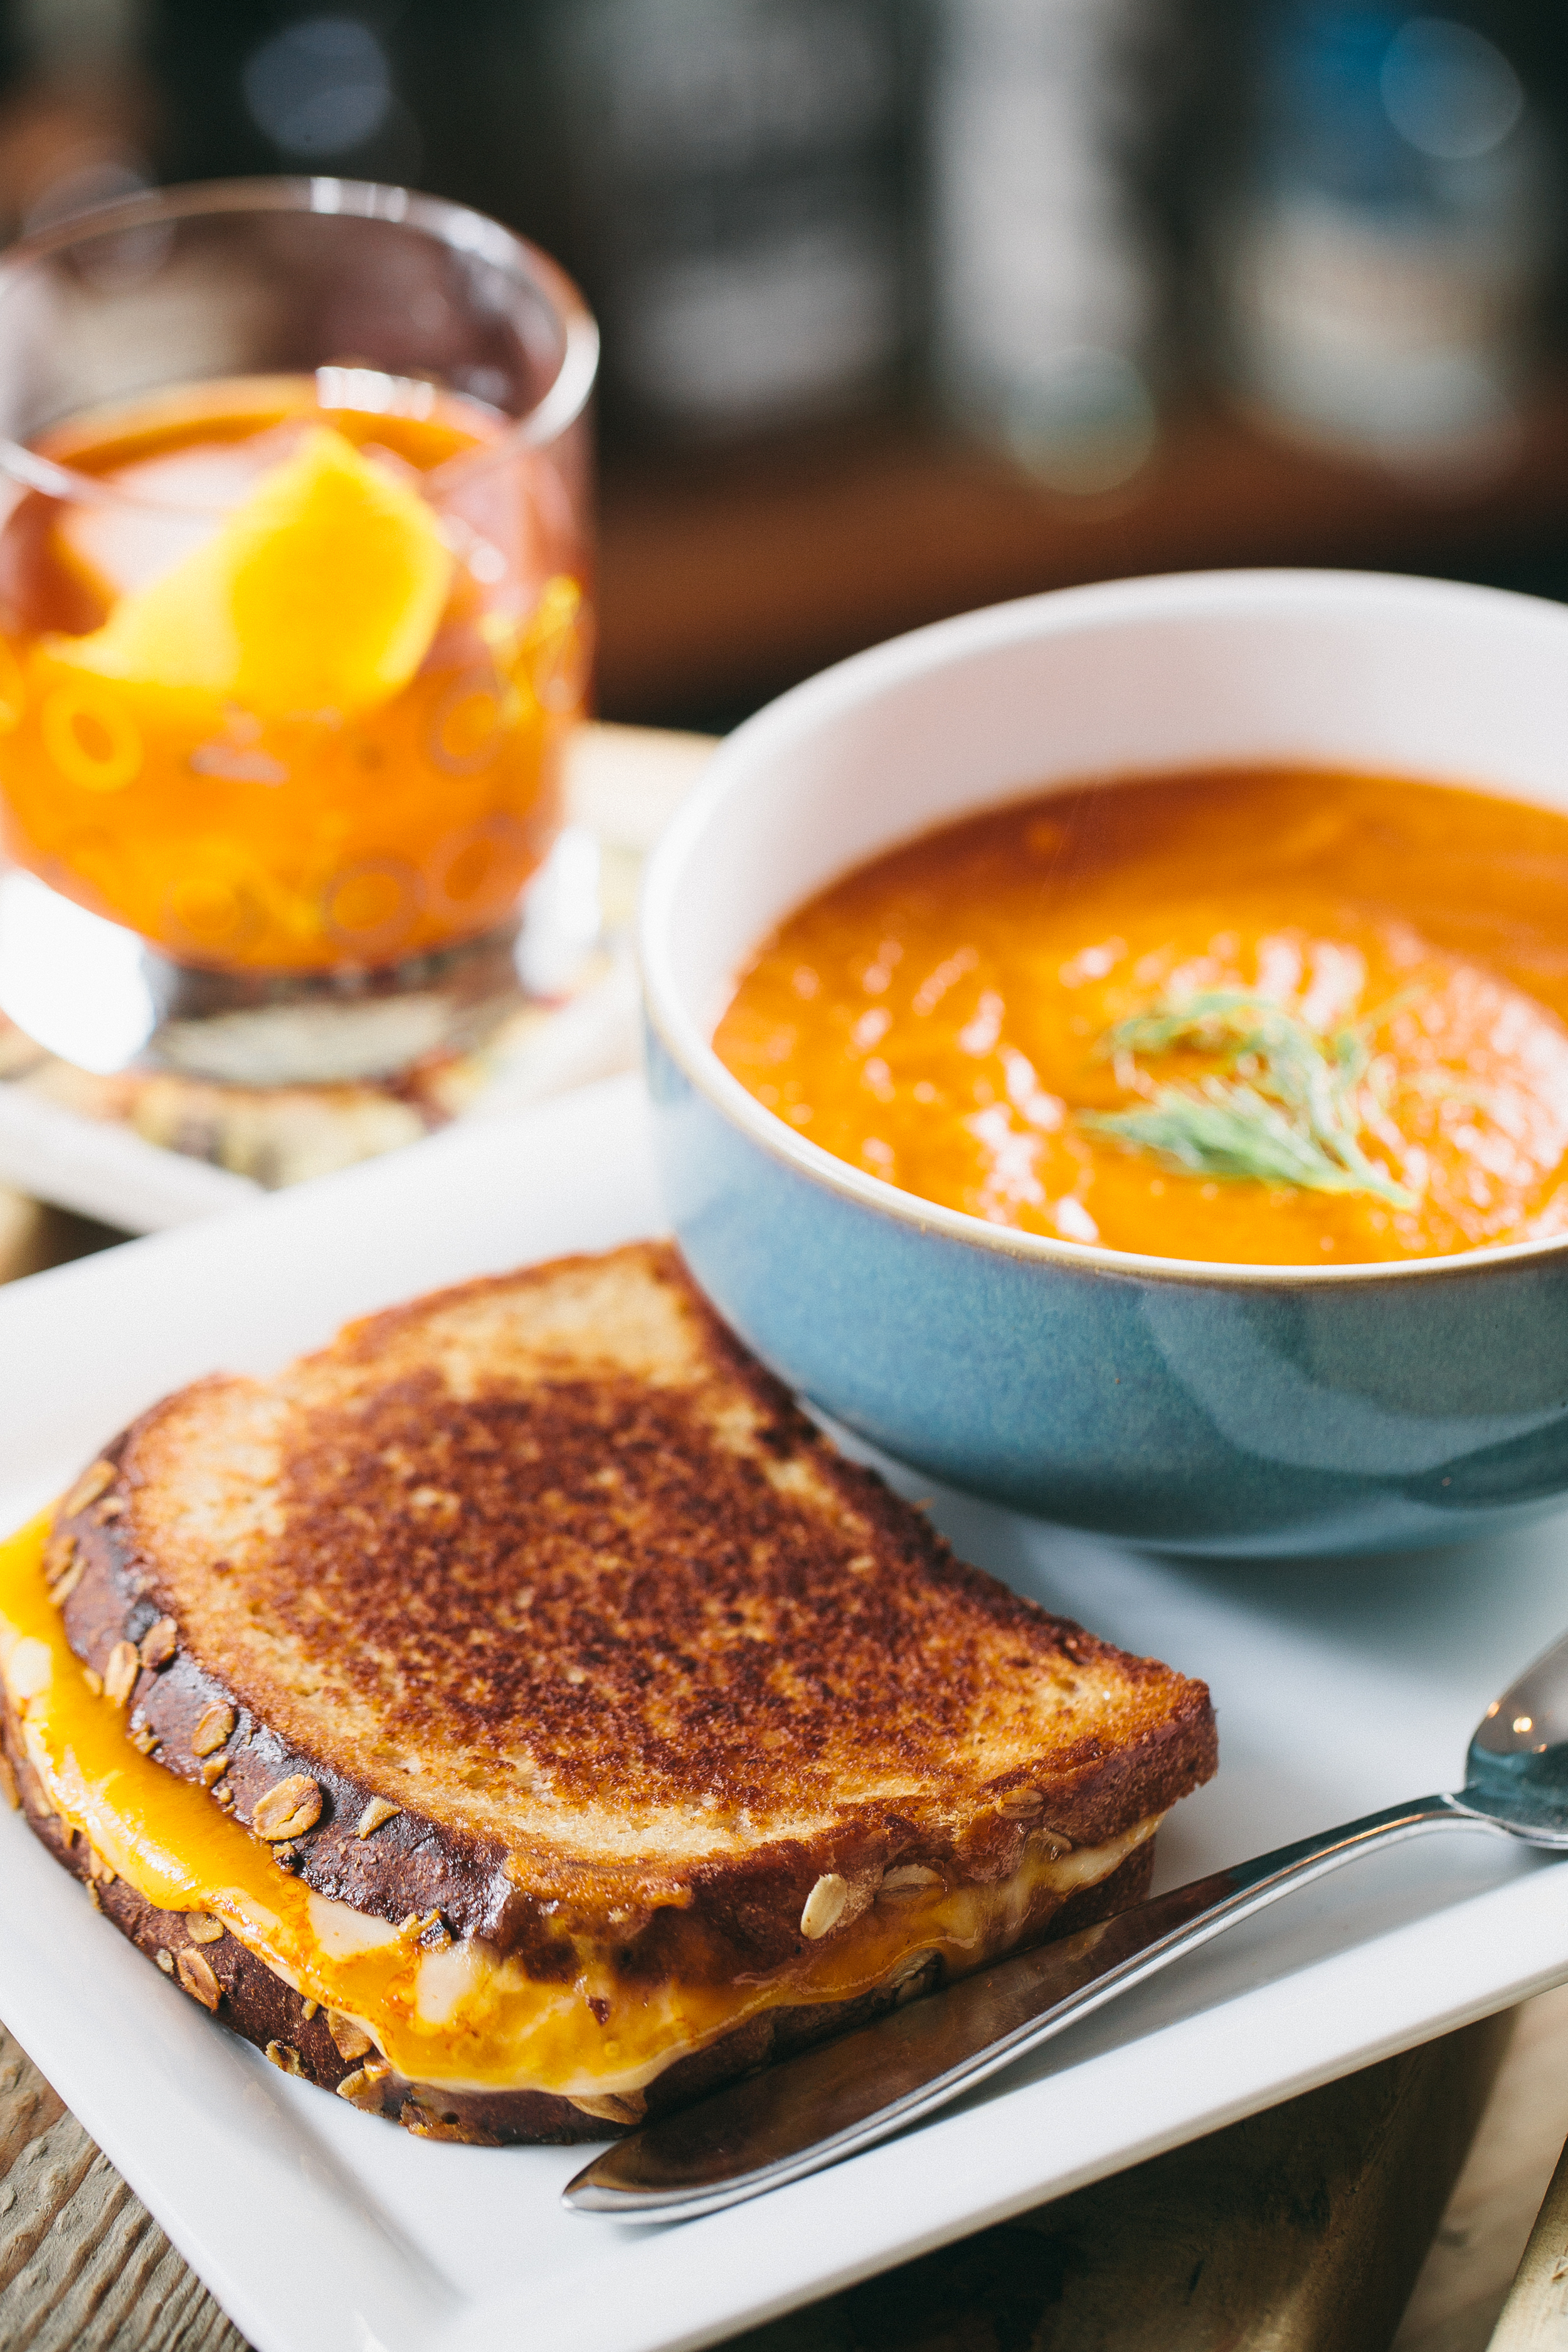 Grilled cheese with tomato and fennel soup